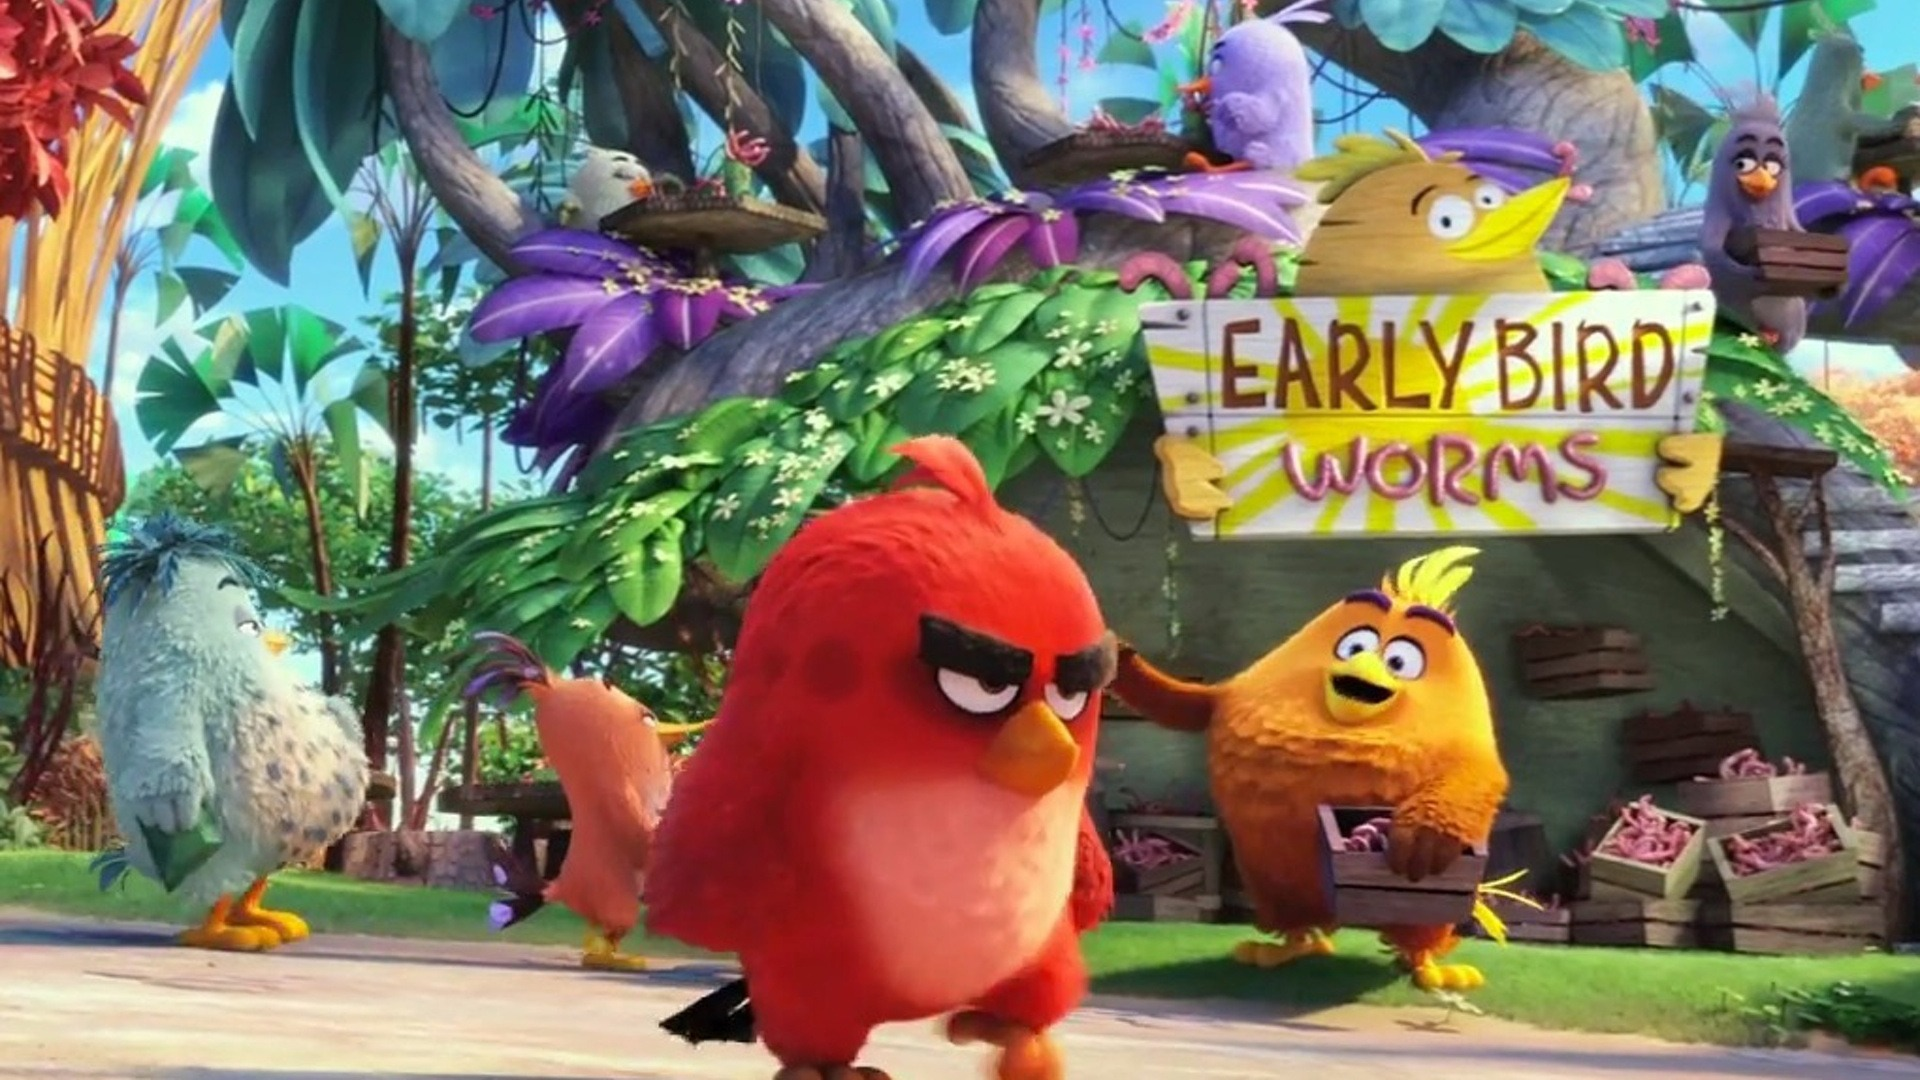 The Angry Birds Movie 2016 Hd Wallpaper 02 Preview 10wallpaper Com